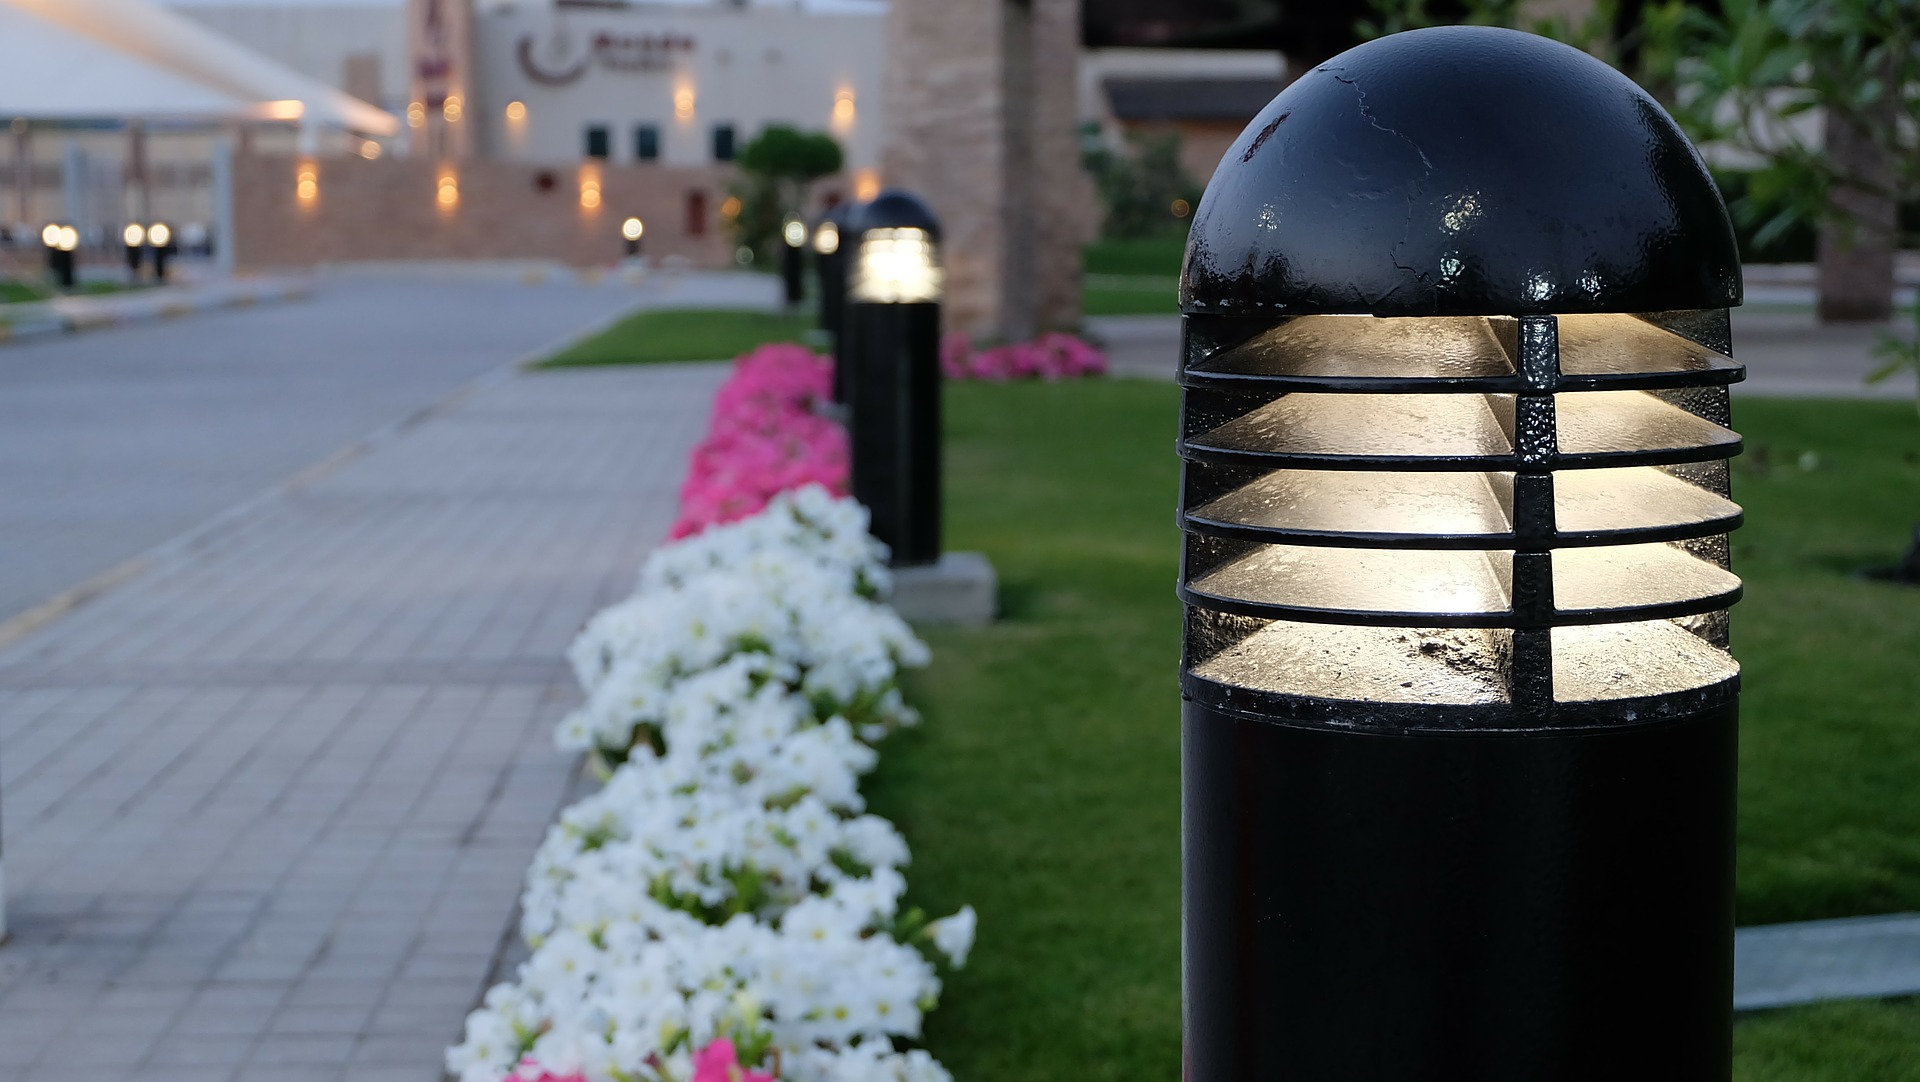 Solar Garden Lamps - Versatile, Easy to Install Outdoor Lighting